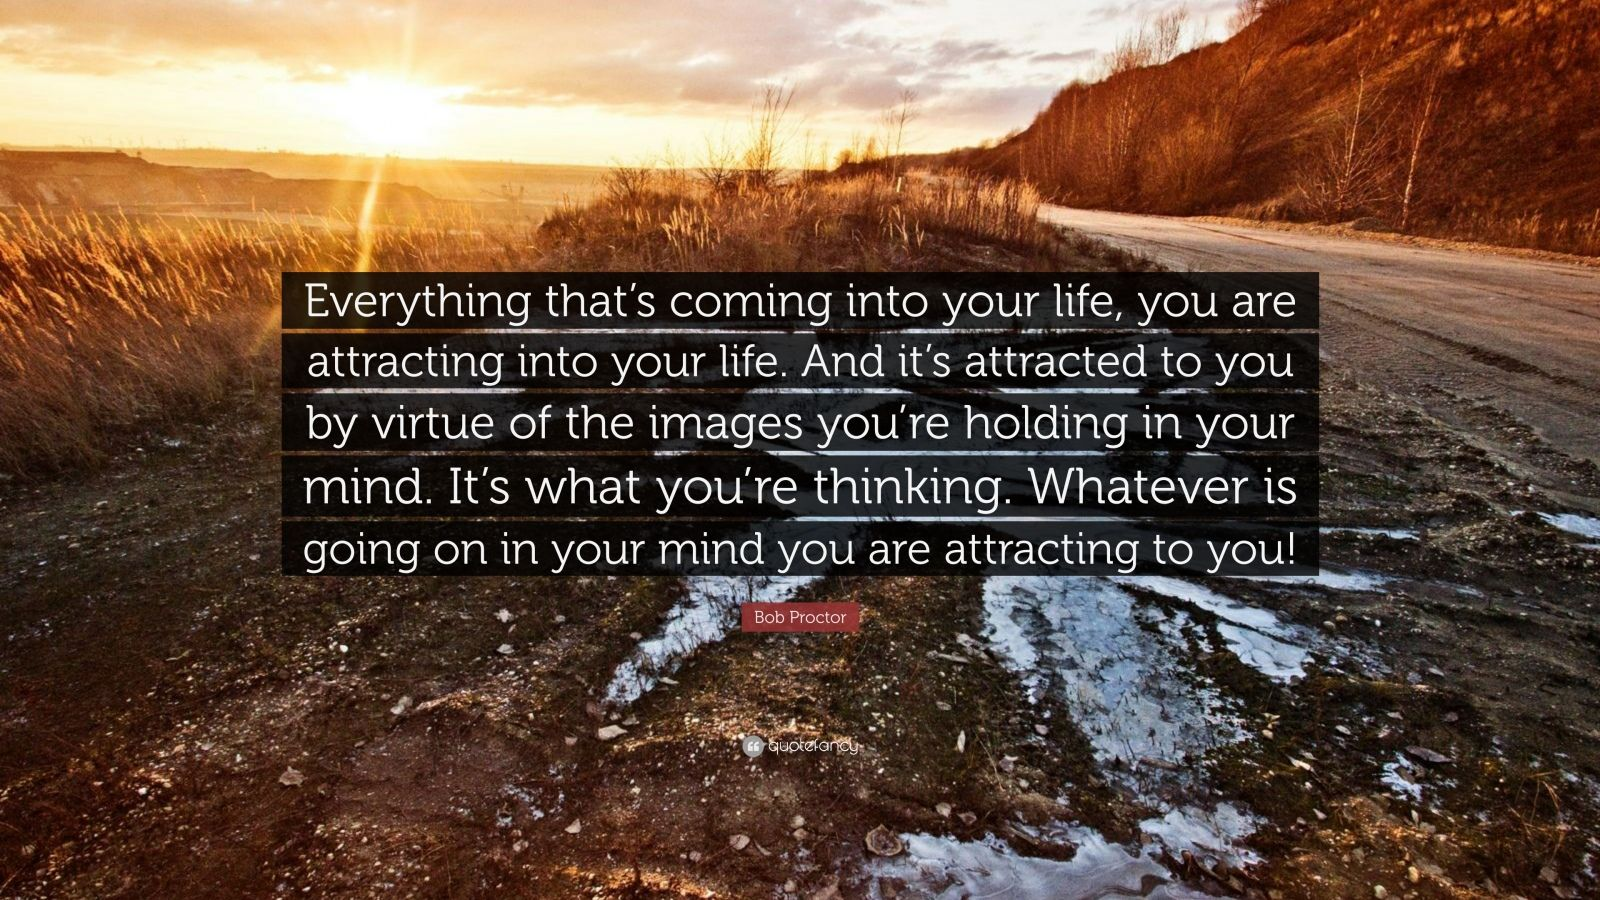 "Bob Proctor Quote: ""Everything that's coming into your life, you are attracting into your life. And it's attracted to you by virtue of the images you're holding in your mind. It's what you're thinking. Whatever is going on in your mind you are attracting to you!"""